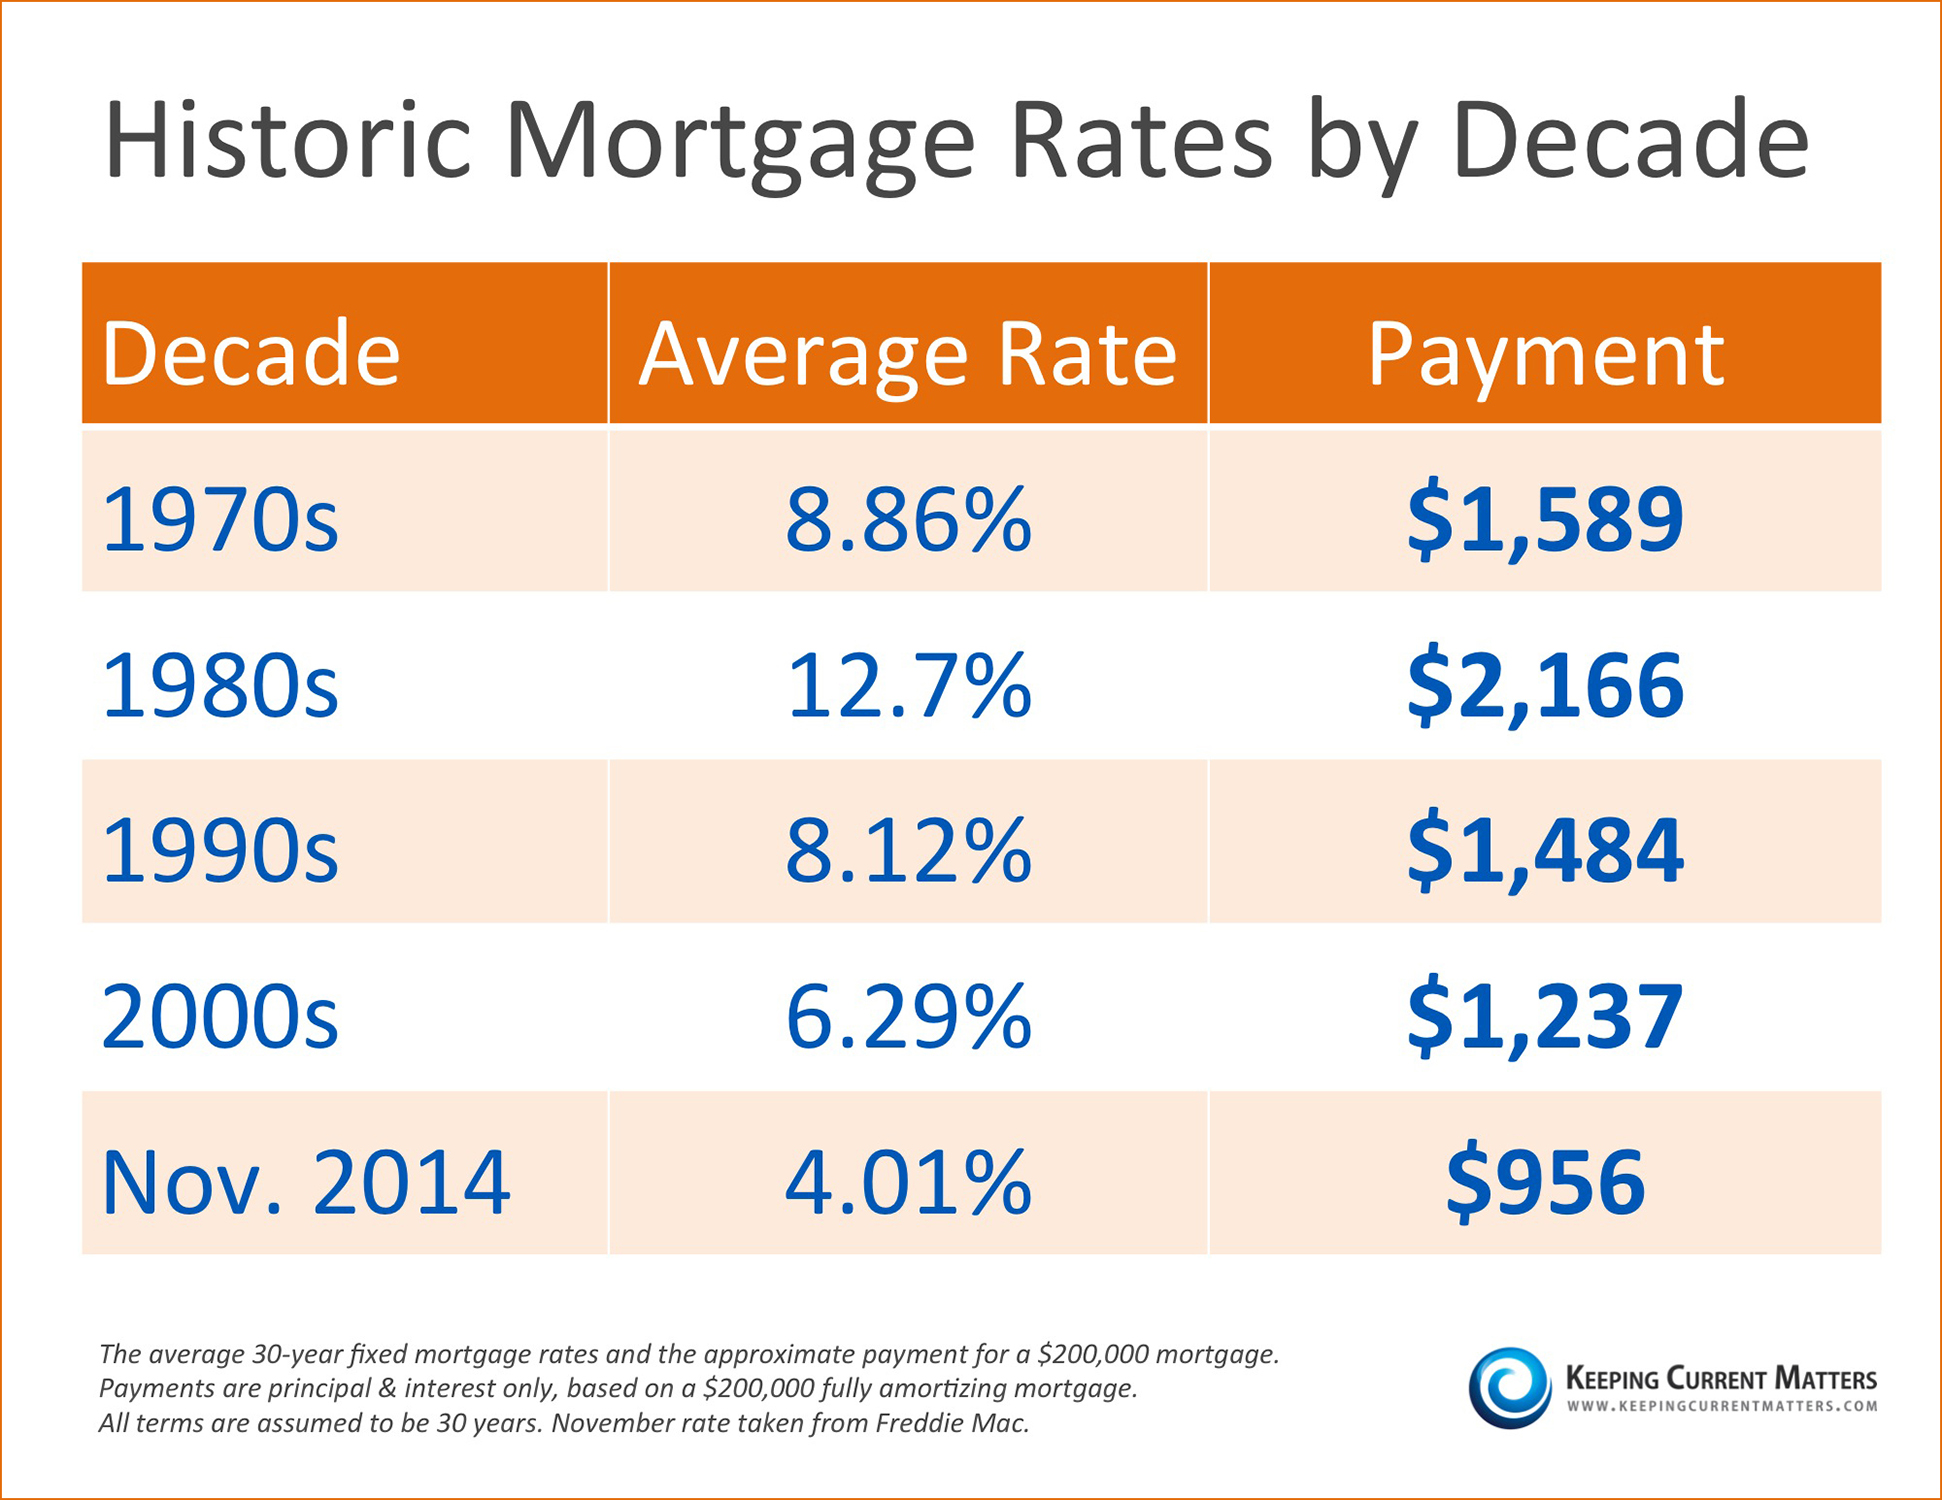 Historic Mortgage Rates by Decade [INFOGRAPHIC] | Keeping Current Matters